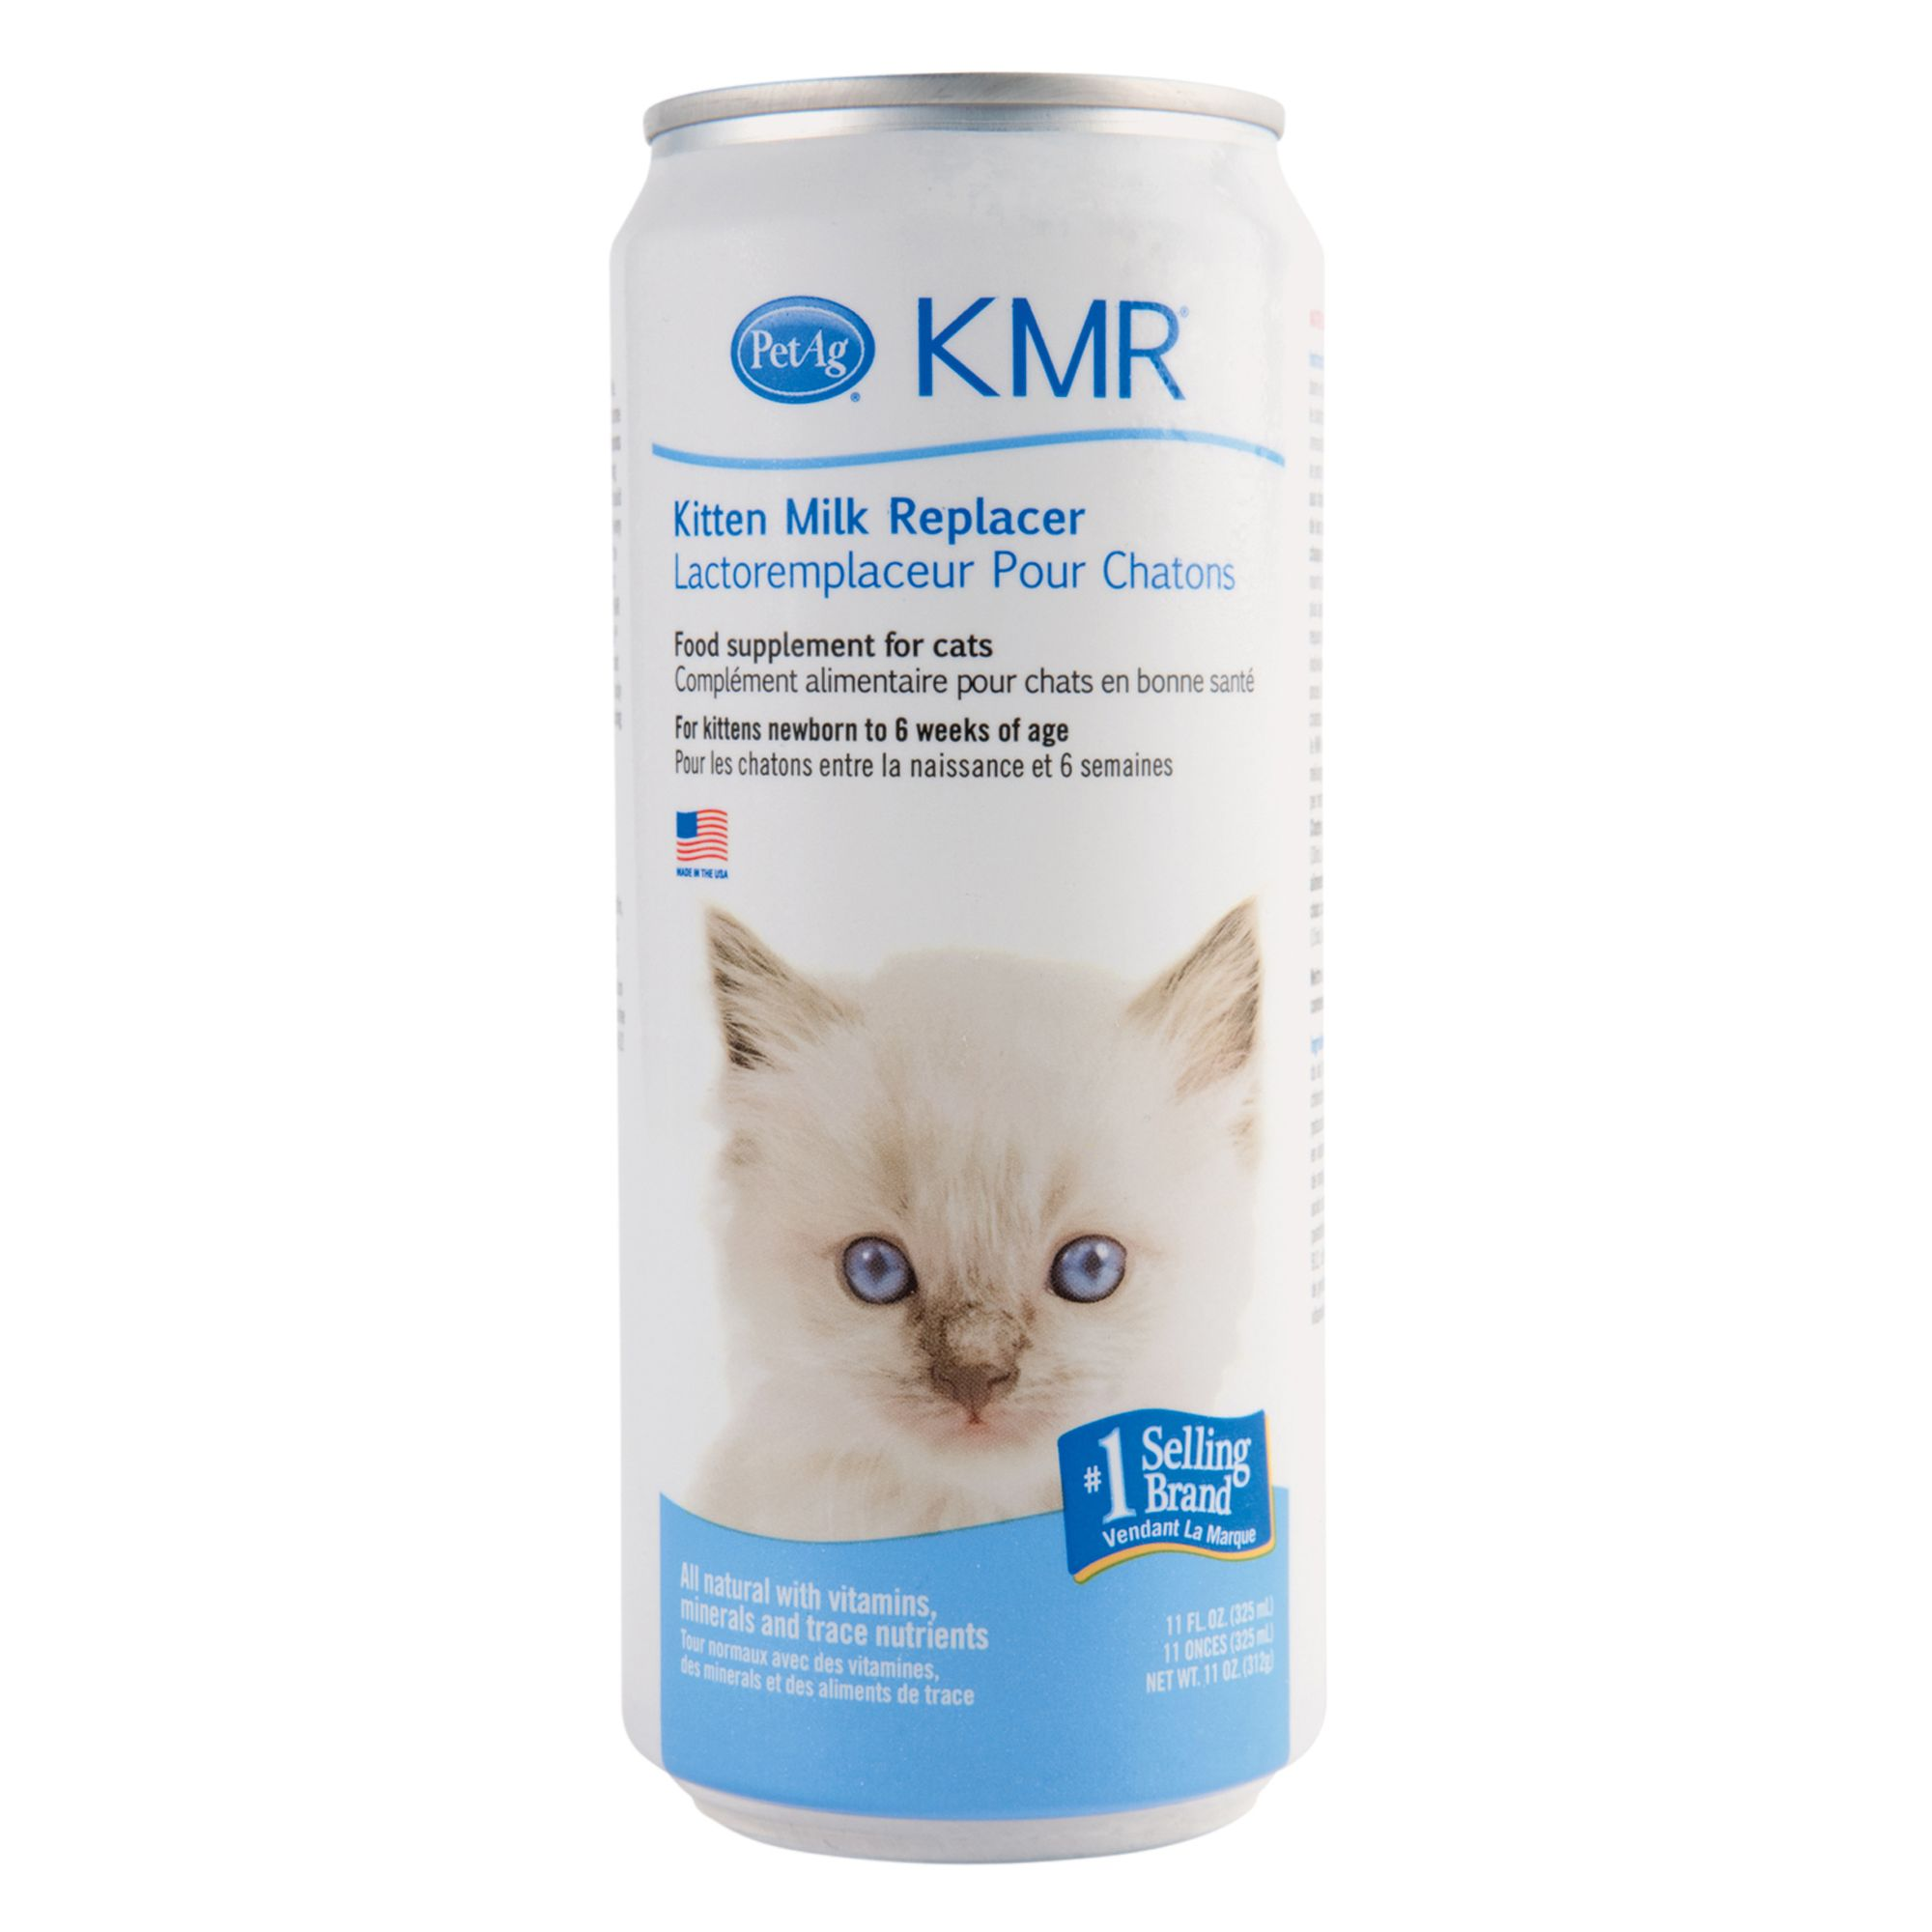 Cat Supplies: Kitten Accessories & Products | PetSmart